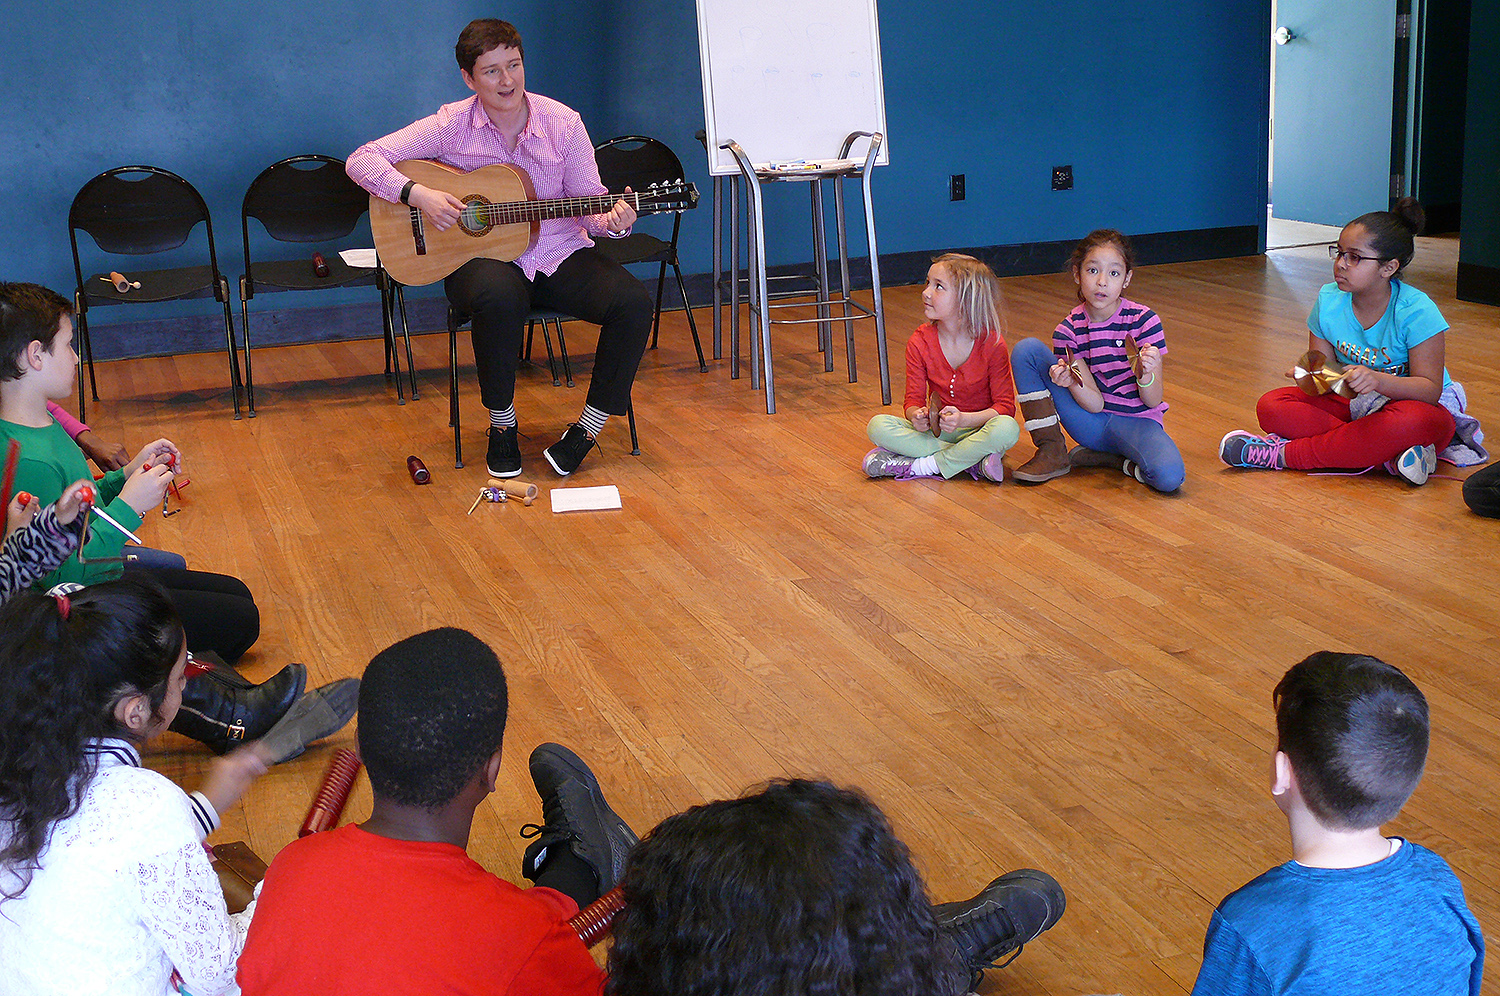 In line with Green Street's mission to offer kids a safe space to build self-esteem, problem solving skills, and act upon their blossoming curiosities by providing a diverse group of role models to work with them, Potemkina's program allowed the children to tap into their creative banks and explore the power of music.